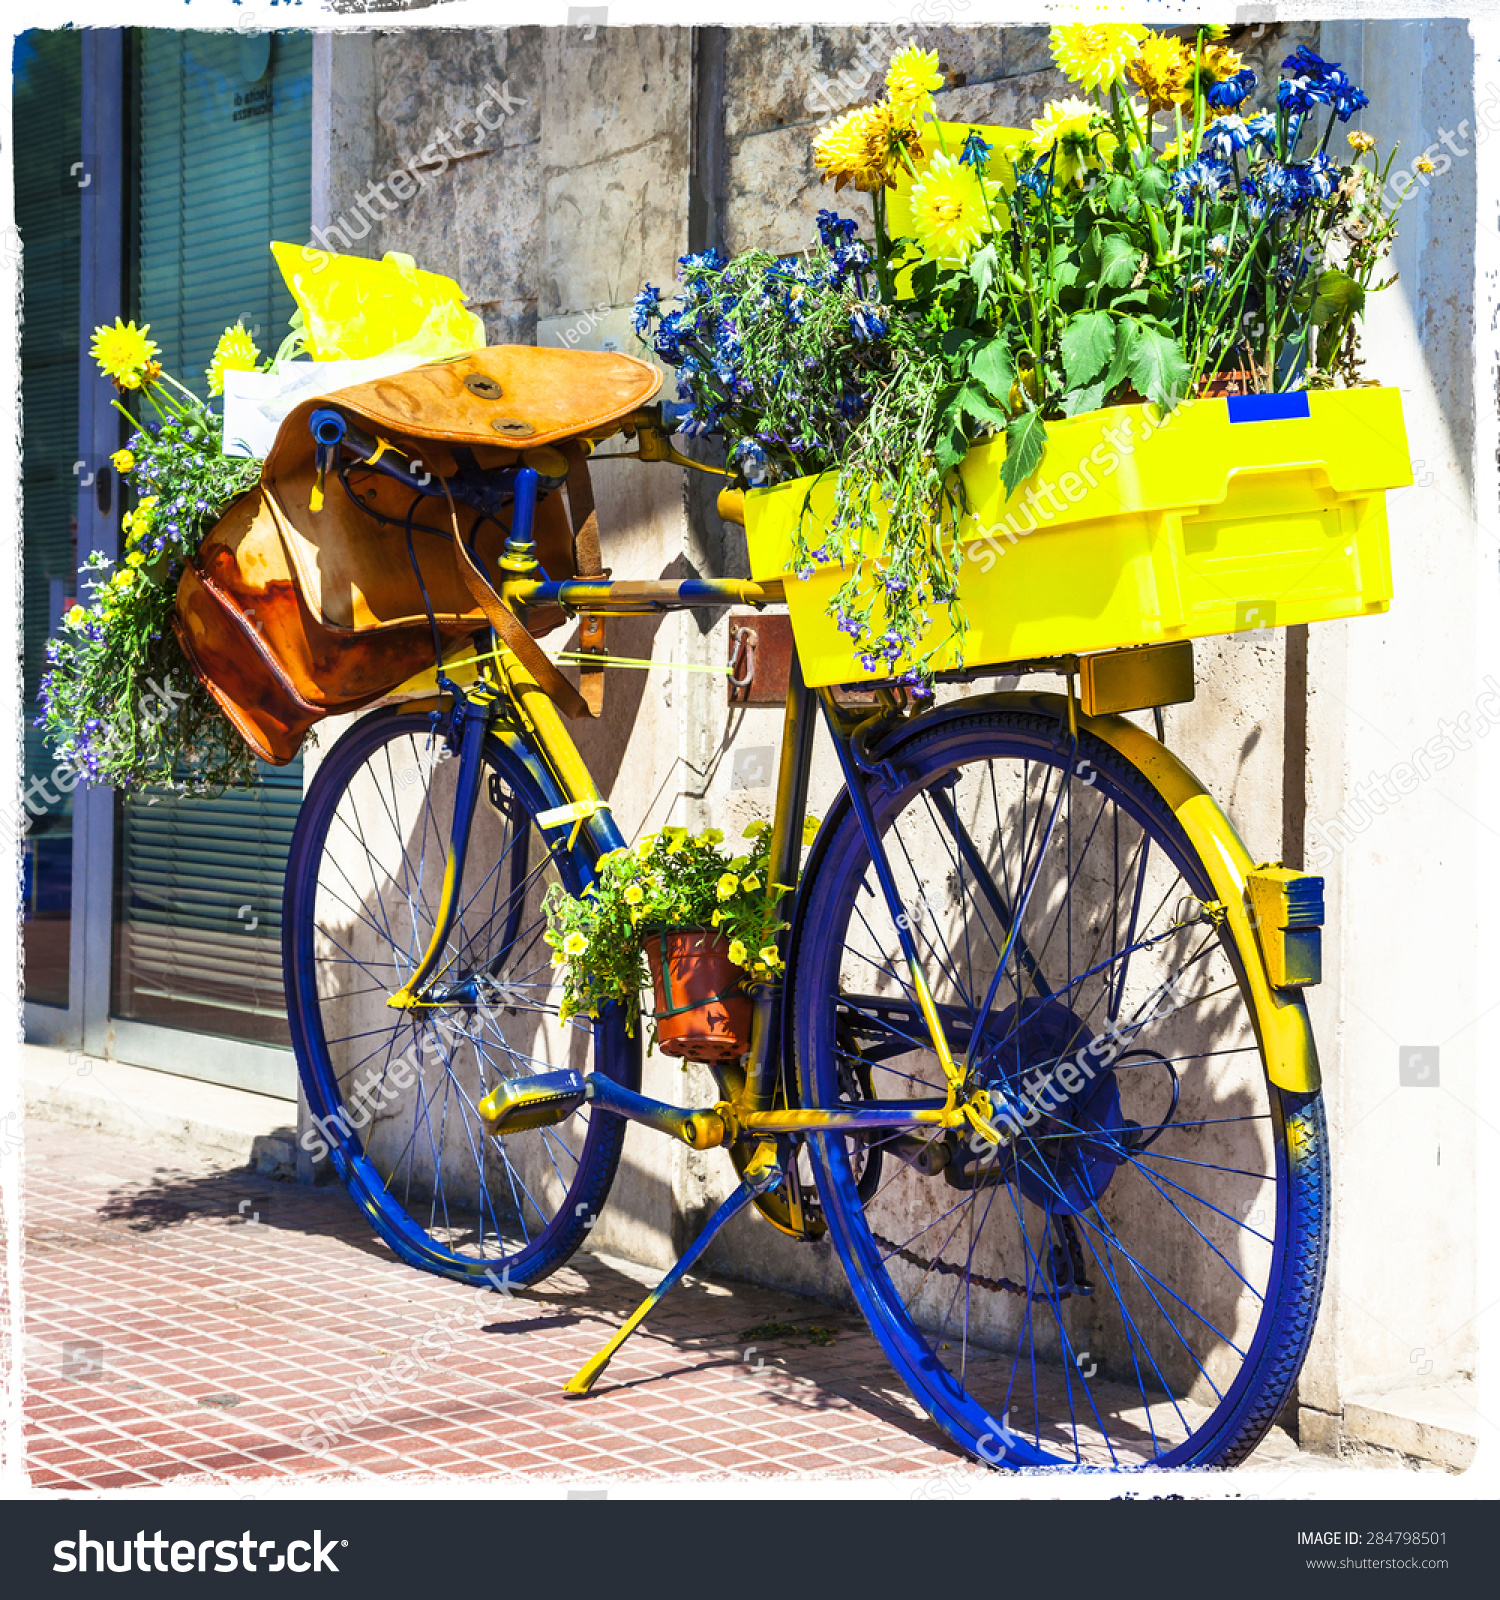 Bicycle of postman charming street decoration stock photo for 70 bike decoration